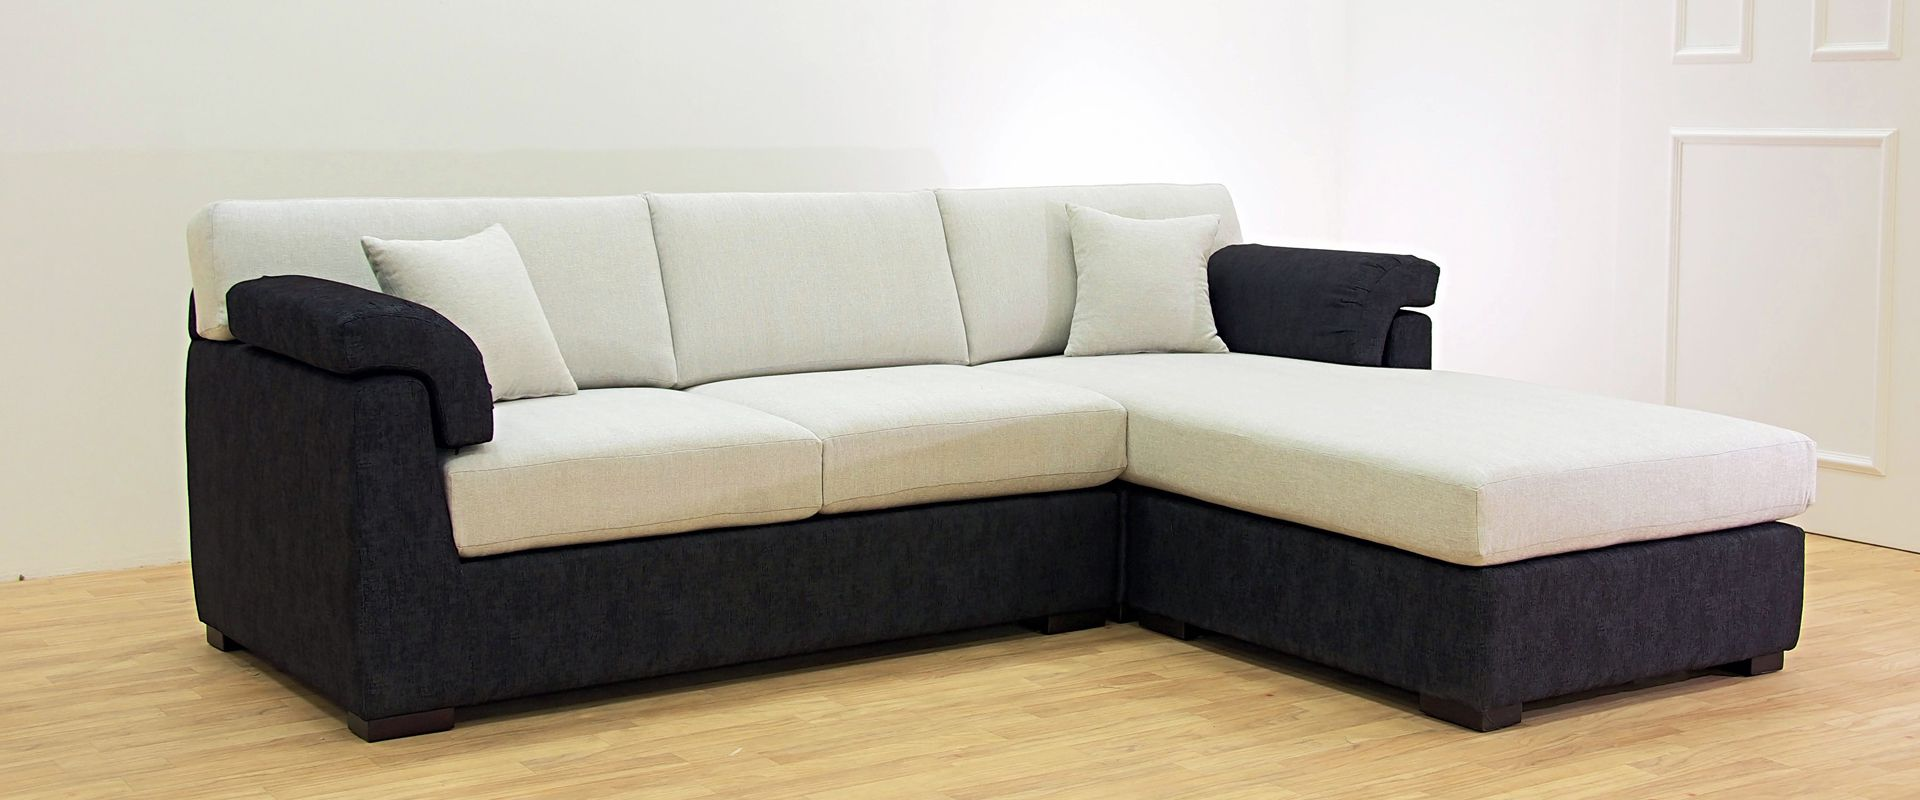 Comfortable sofas and seatings